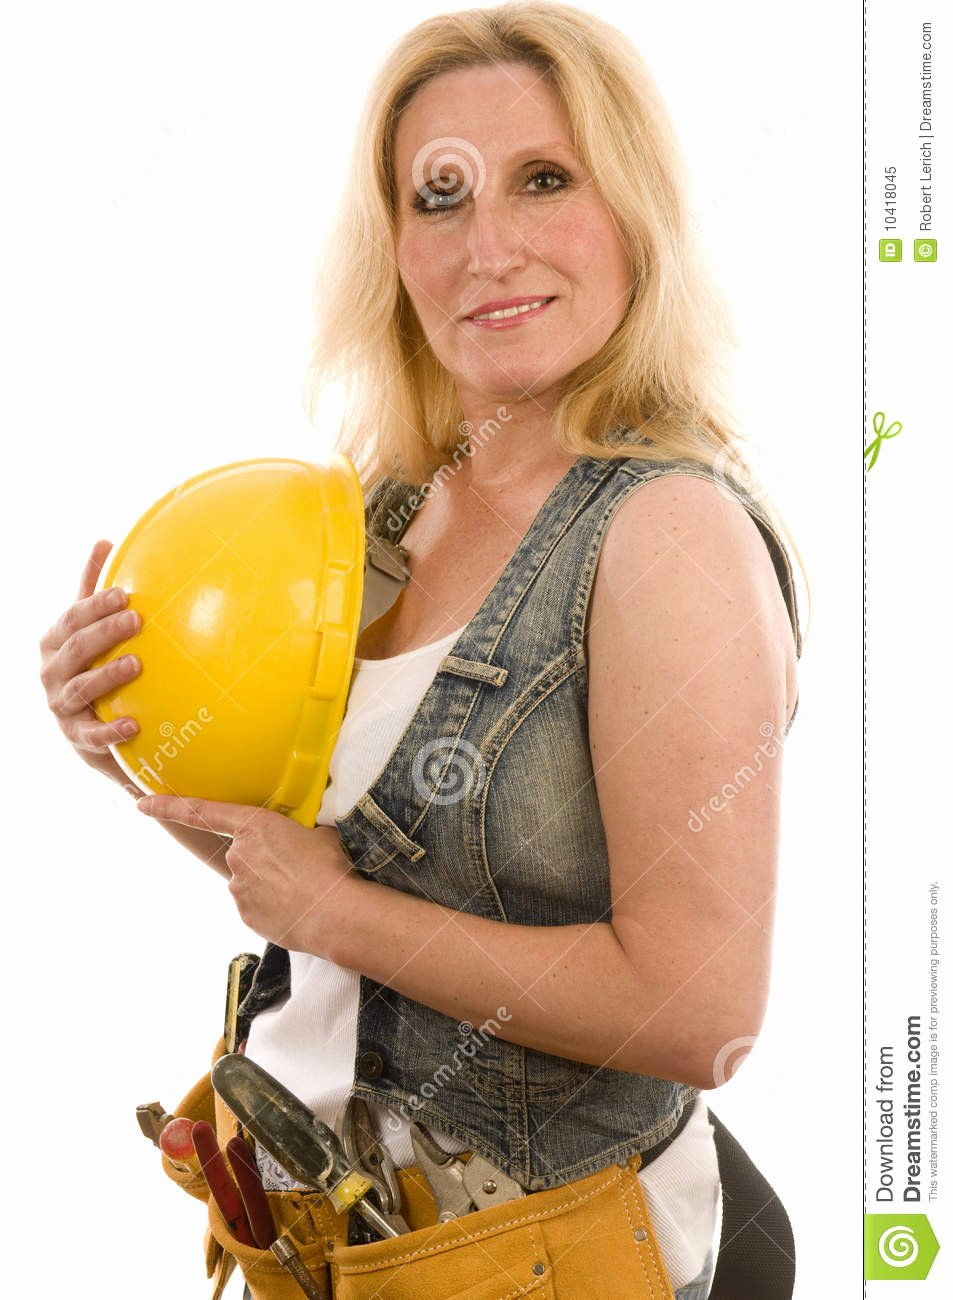 Free Sexy Women Photos Awesome Contractor Construction Lady with tools Royalty Free Stock